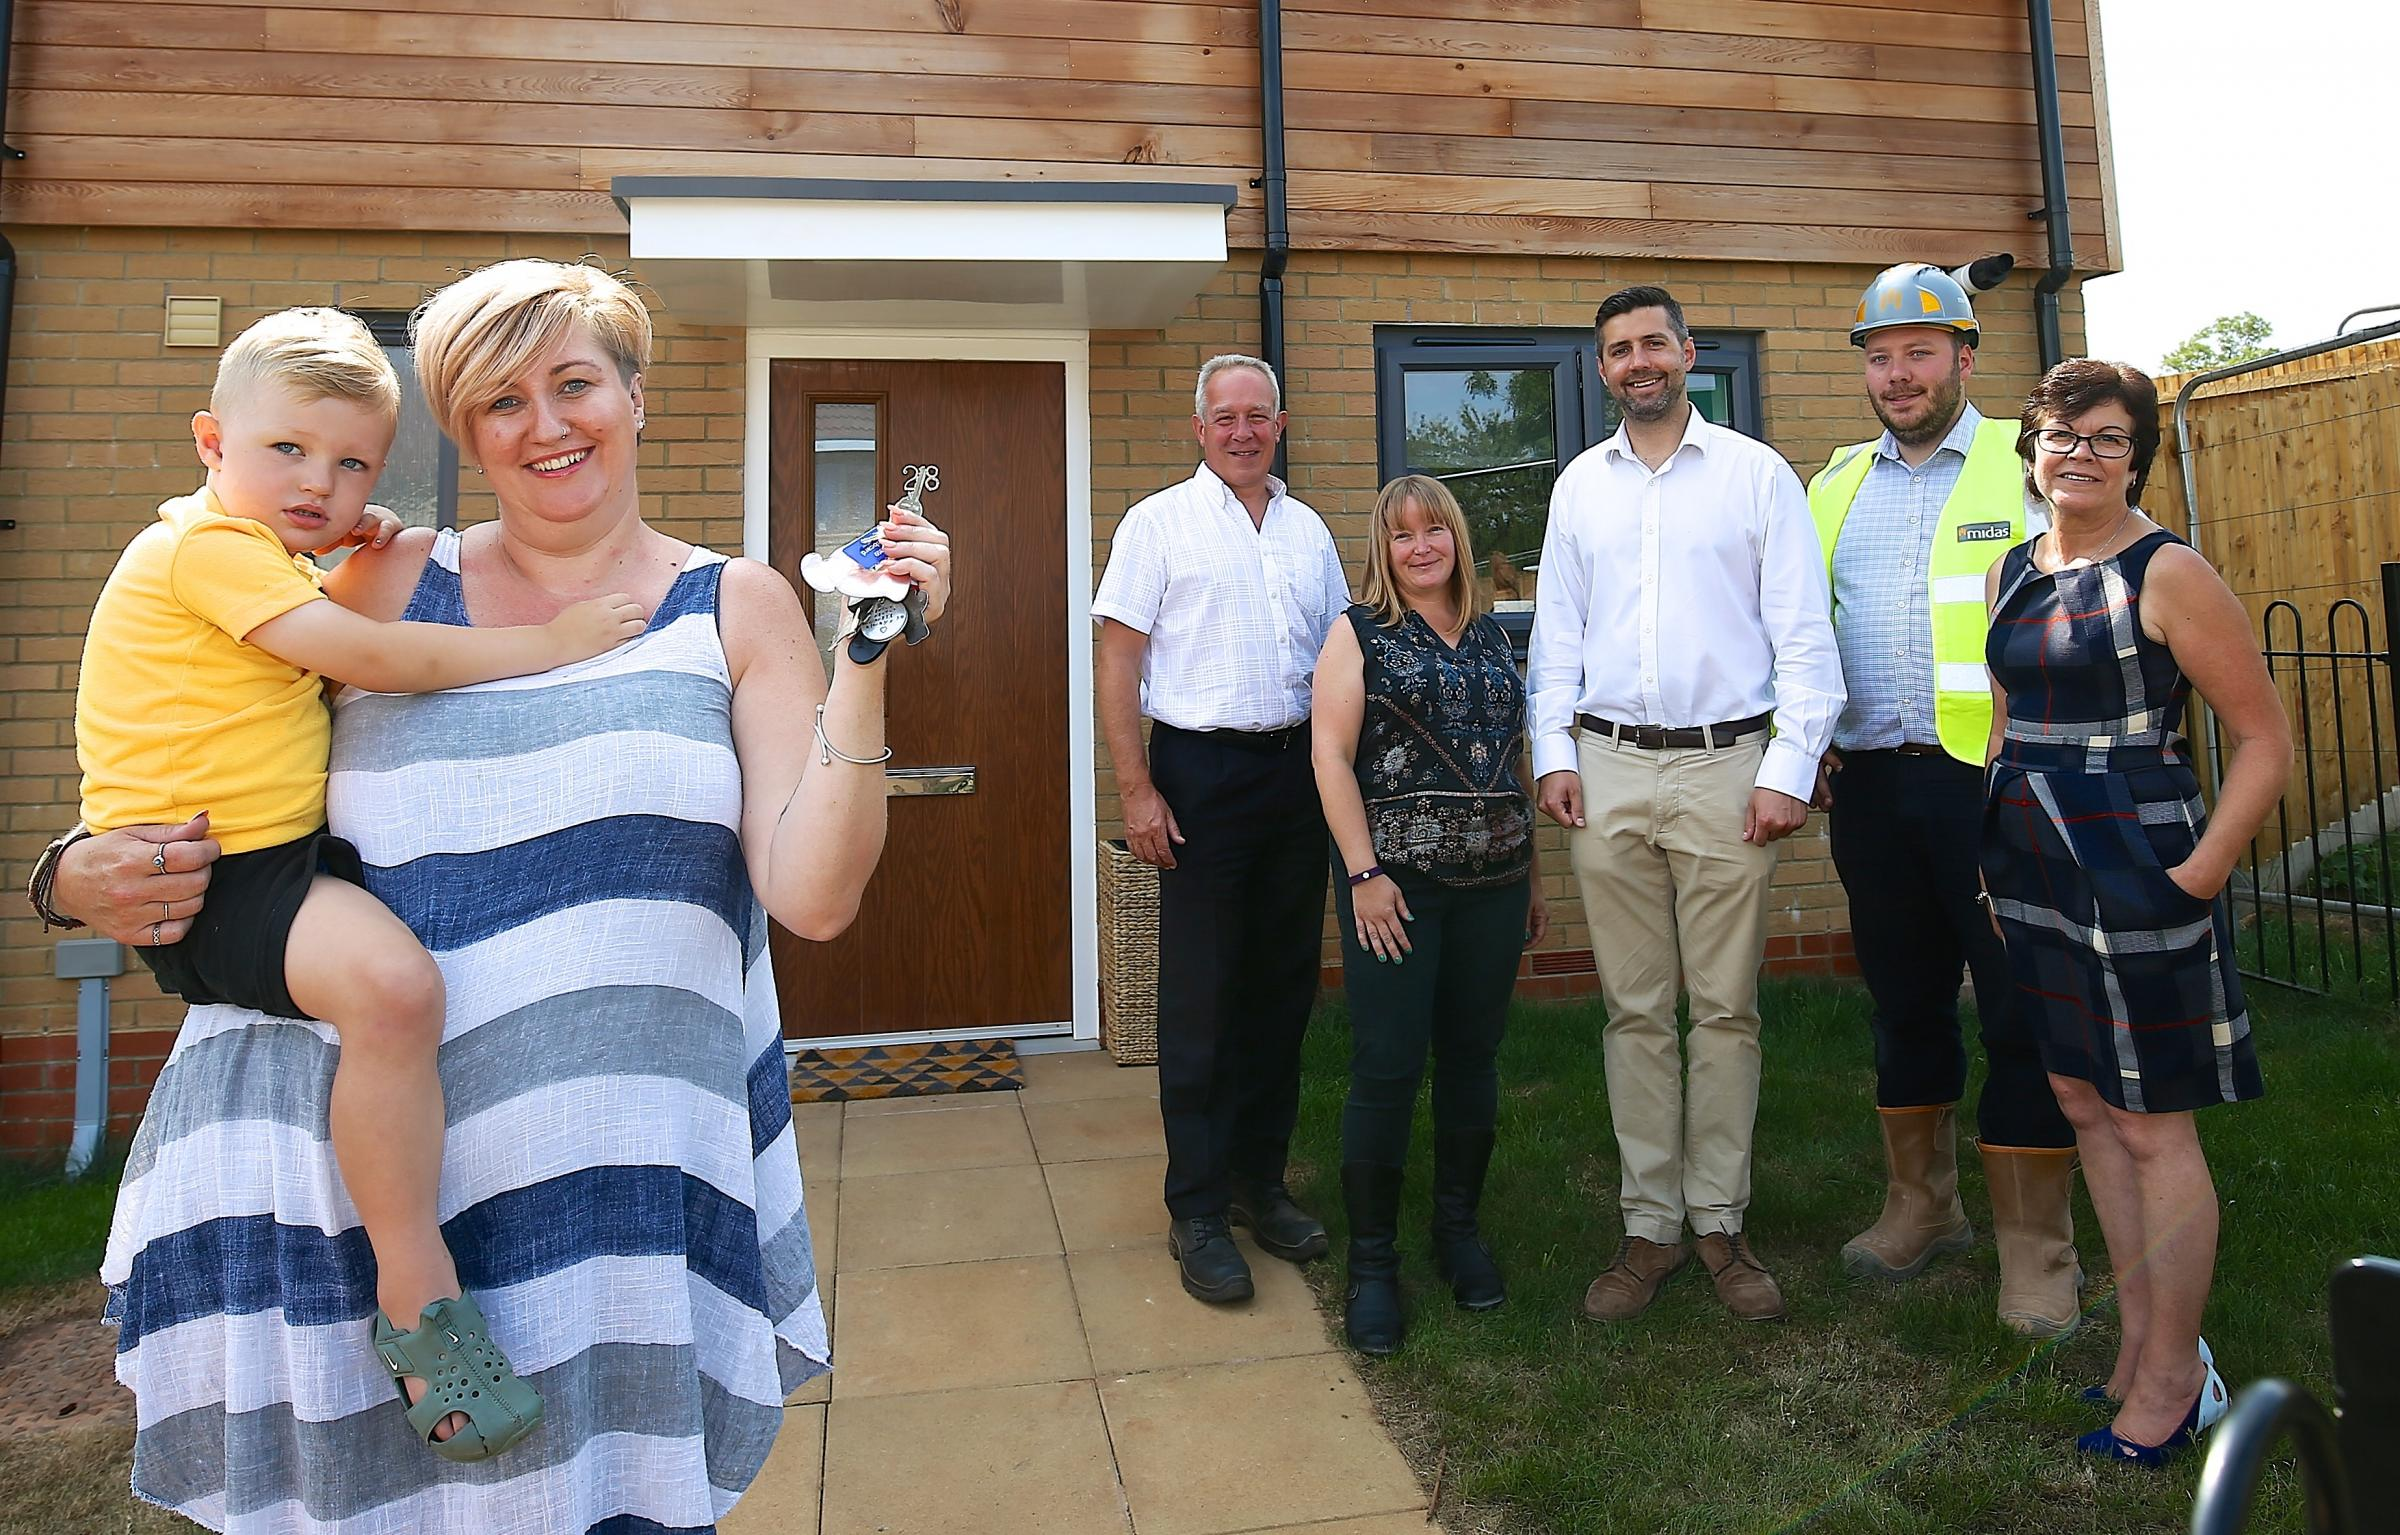 Ms Samantha Burge new resident at 28 Hoopers Walk , long well Green with son Aibie and members of SGC